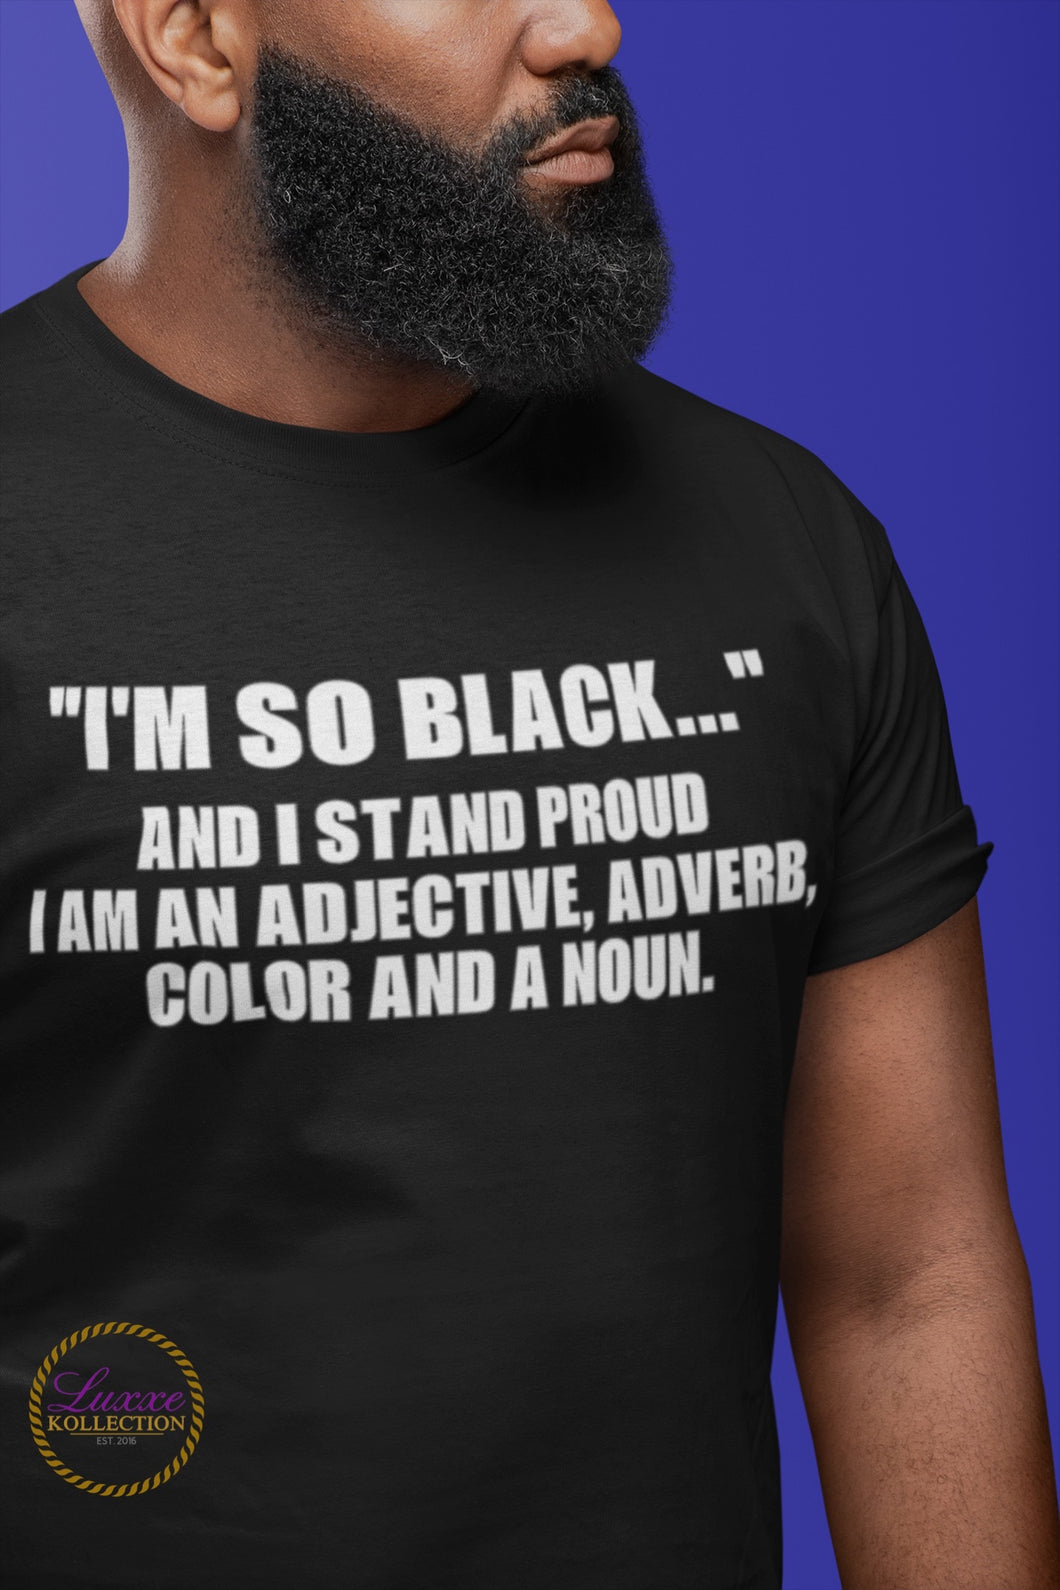 """I'M SO BLACK...."" And I Stand Proud - I'm An Adjective, Adverb, Color And A Noun T-shirt"